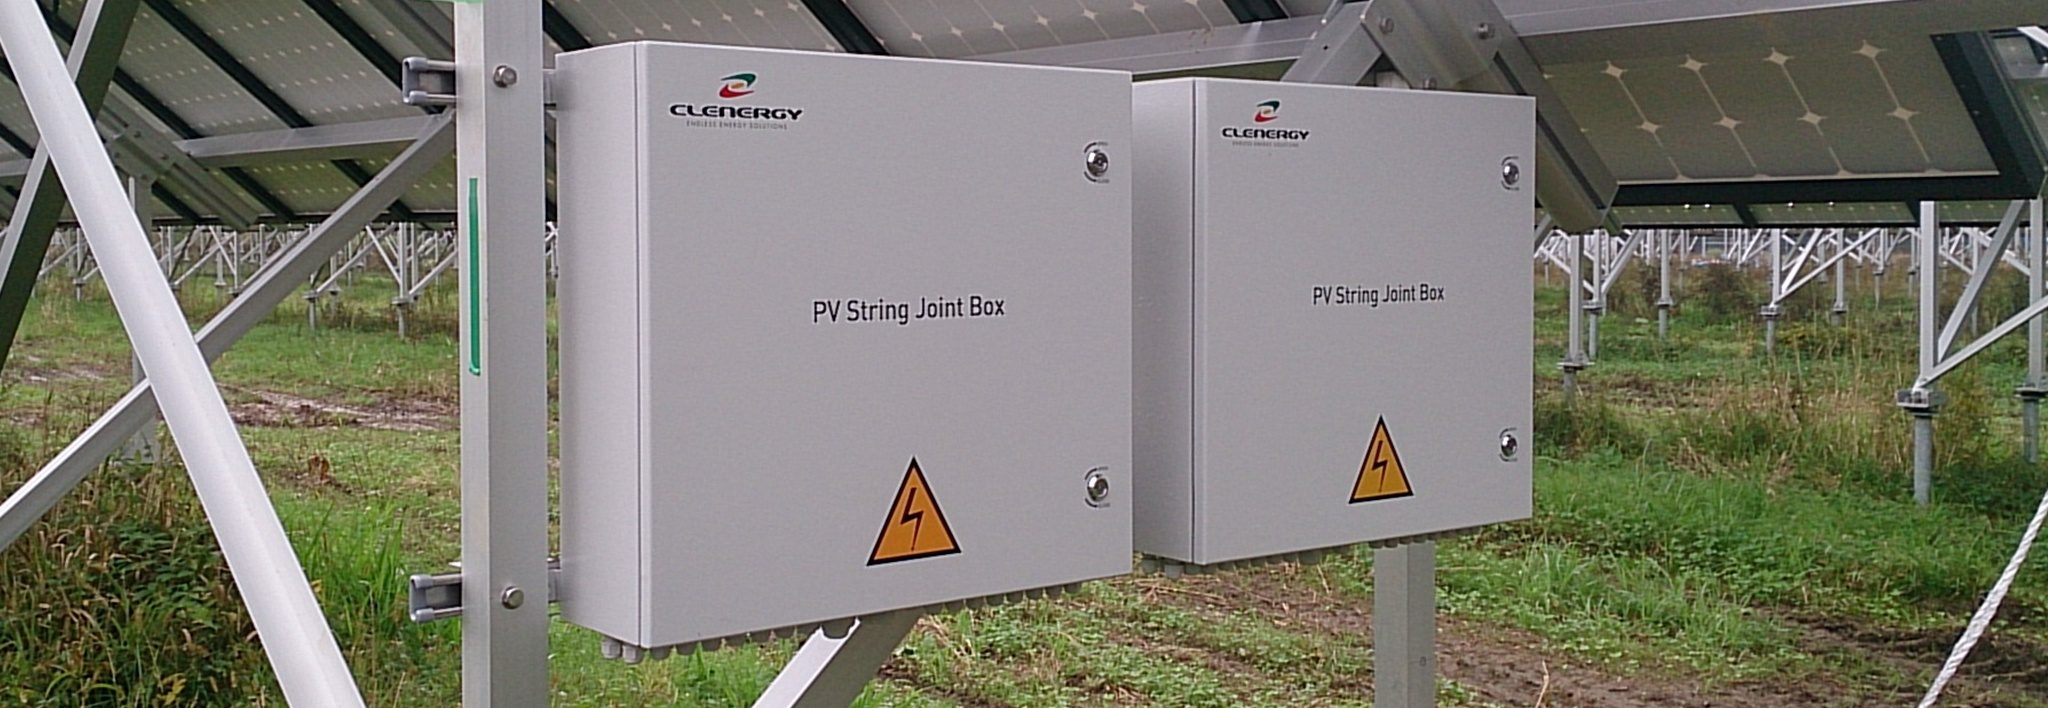 Clenergy Ground-mount PV String Joint Box PV Project in Kanegasaki